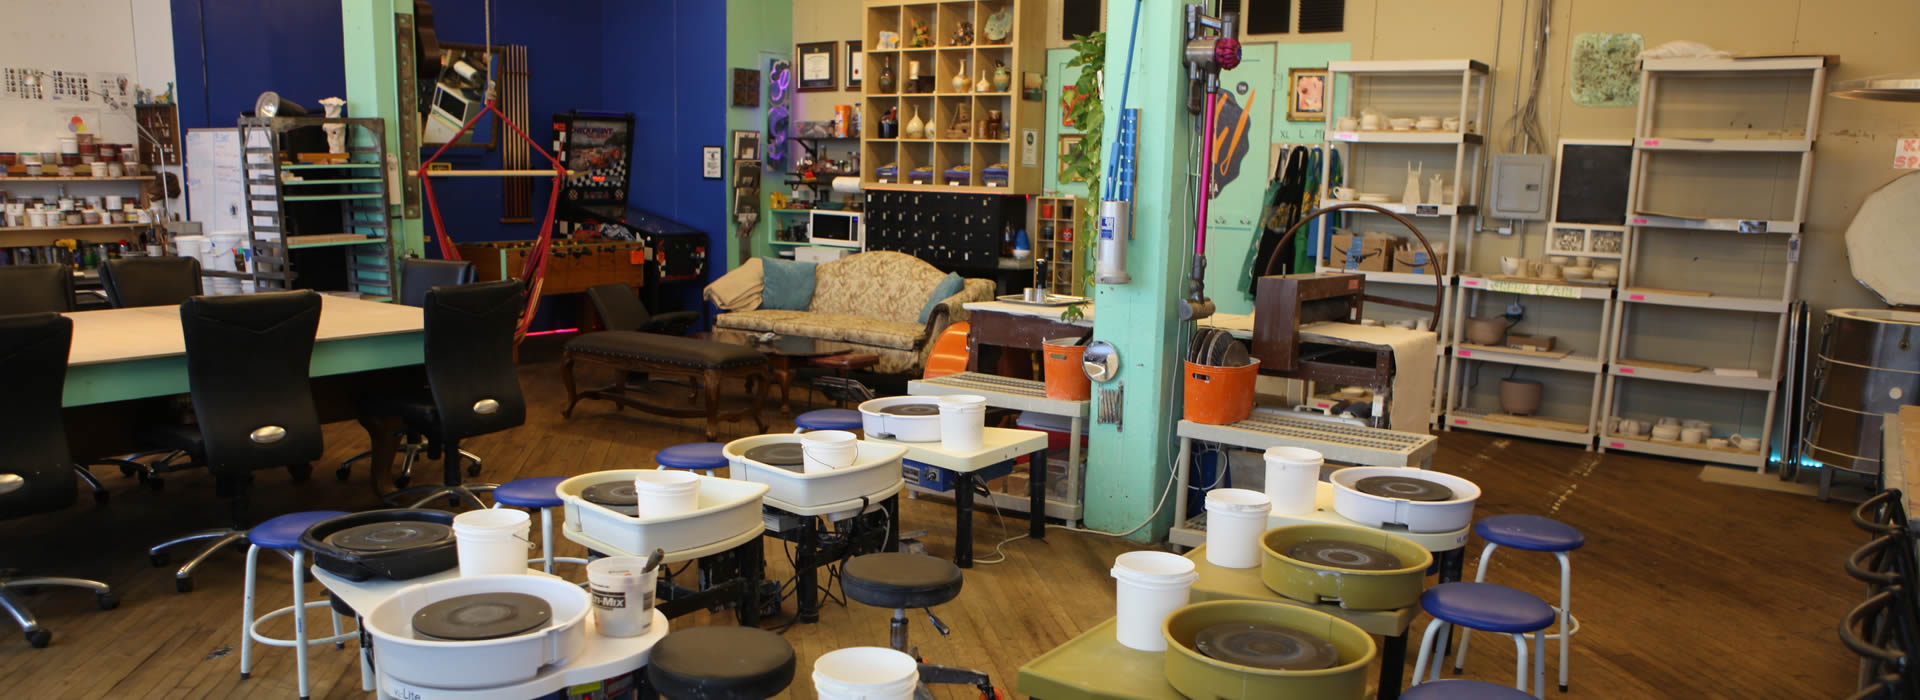 About Yay Clay! Pottery & Art Studio in Philadelphia